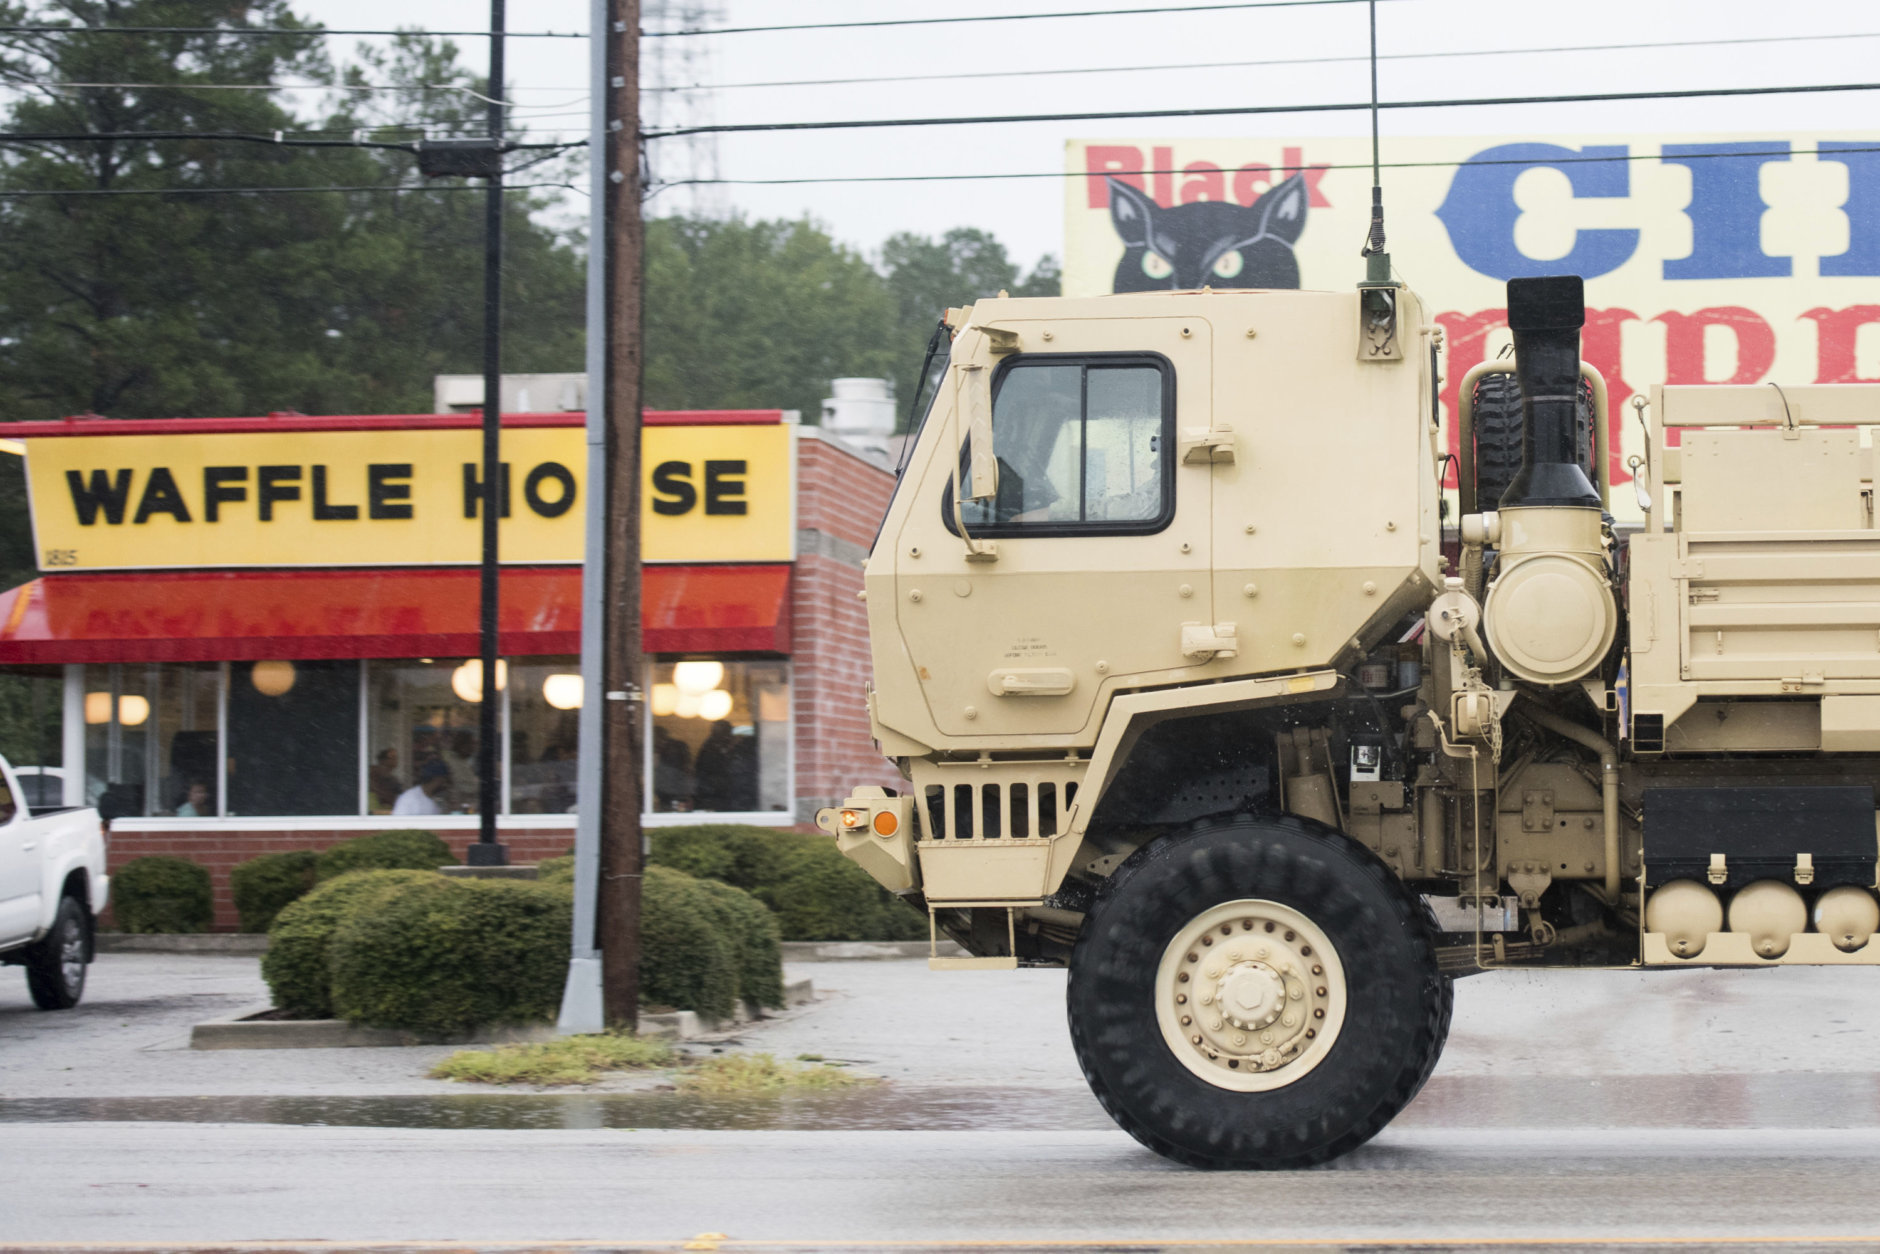 A National Guard vehicle drives past a Waffle House as Hurricane Florence slowly moves across the East Coast Friday, Sept. 14, 2018, in Florence, S.C. (AP Photo/Sean Rayford)